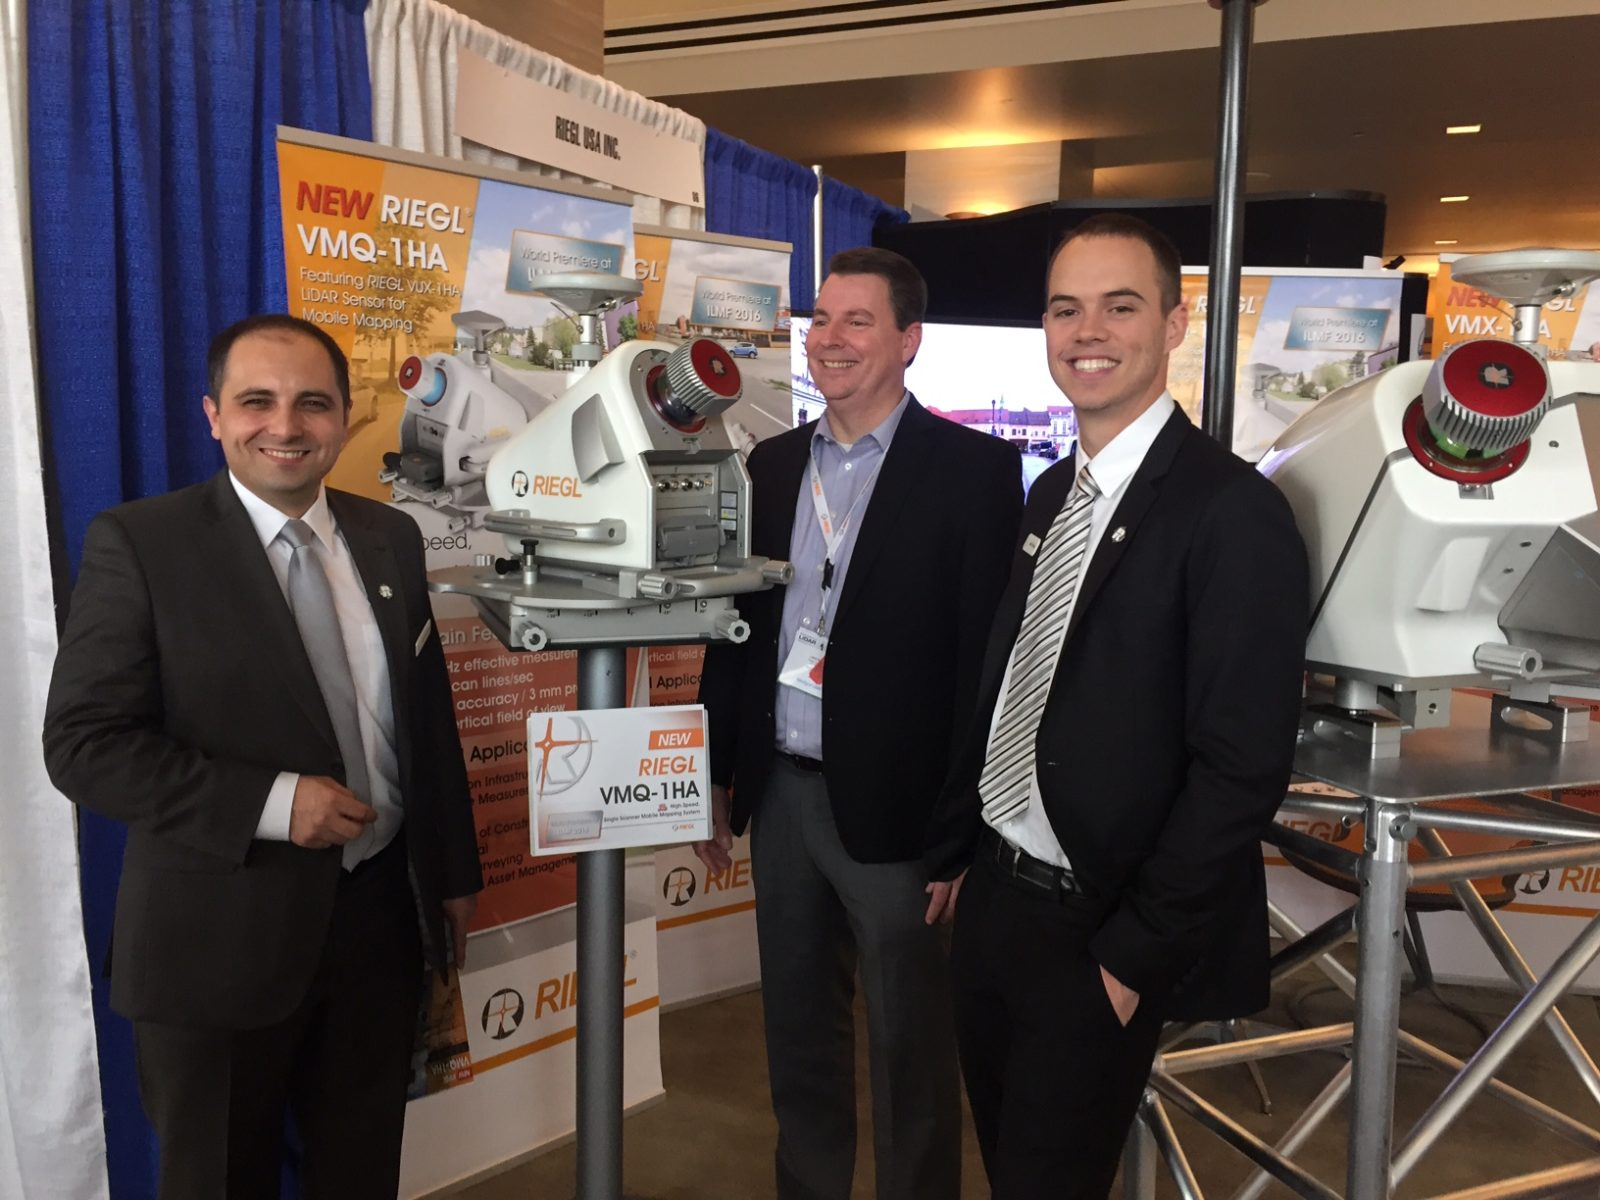 RIEGL_NewMLS-Systems_Launch1